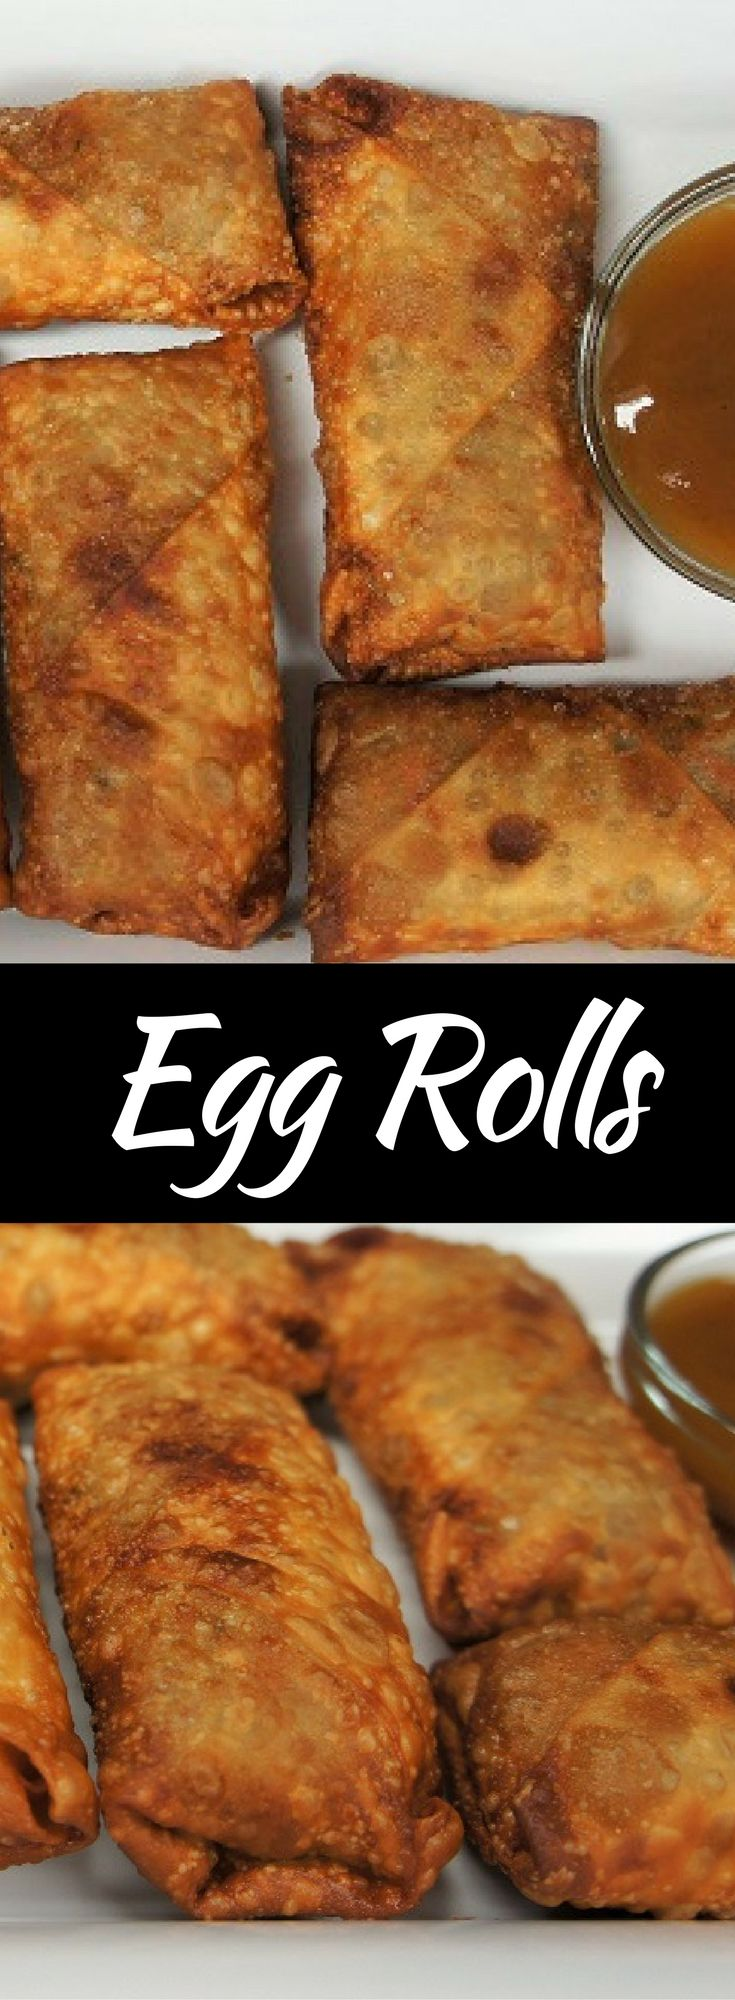 These pork egg rolls are so good, and they're really easy to make at home. For this take-out classic we use ground pork and a wonderful broccoli slaw.